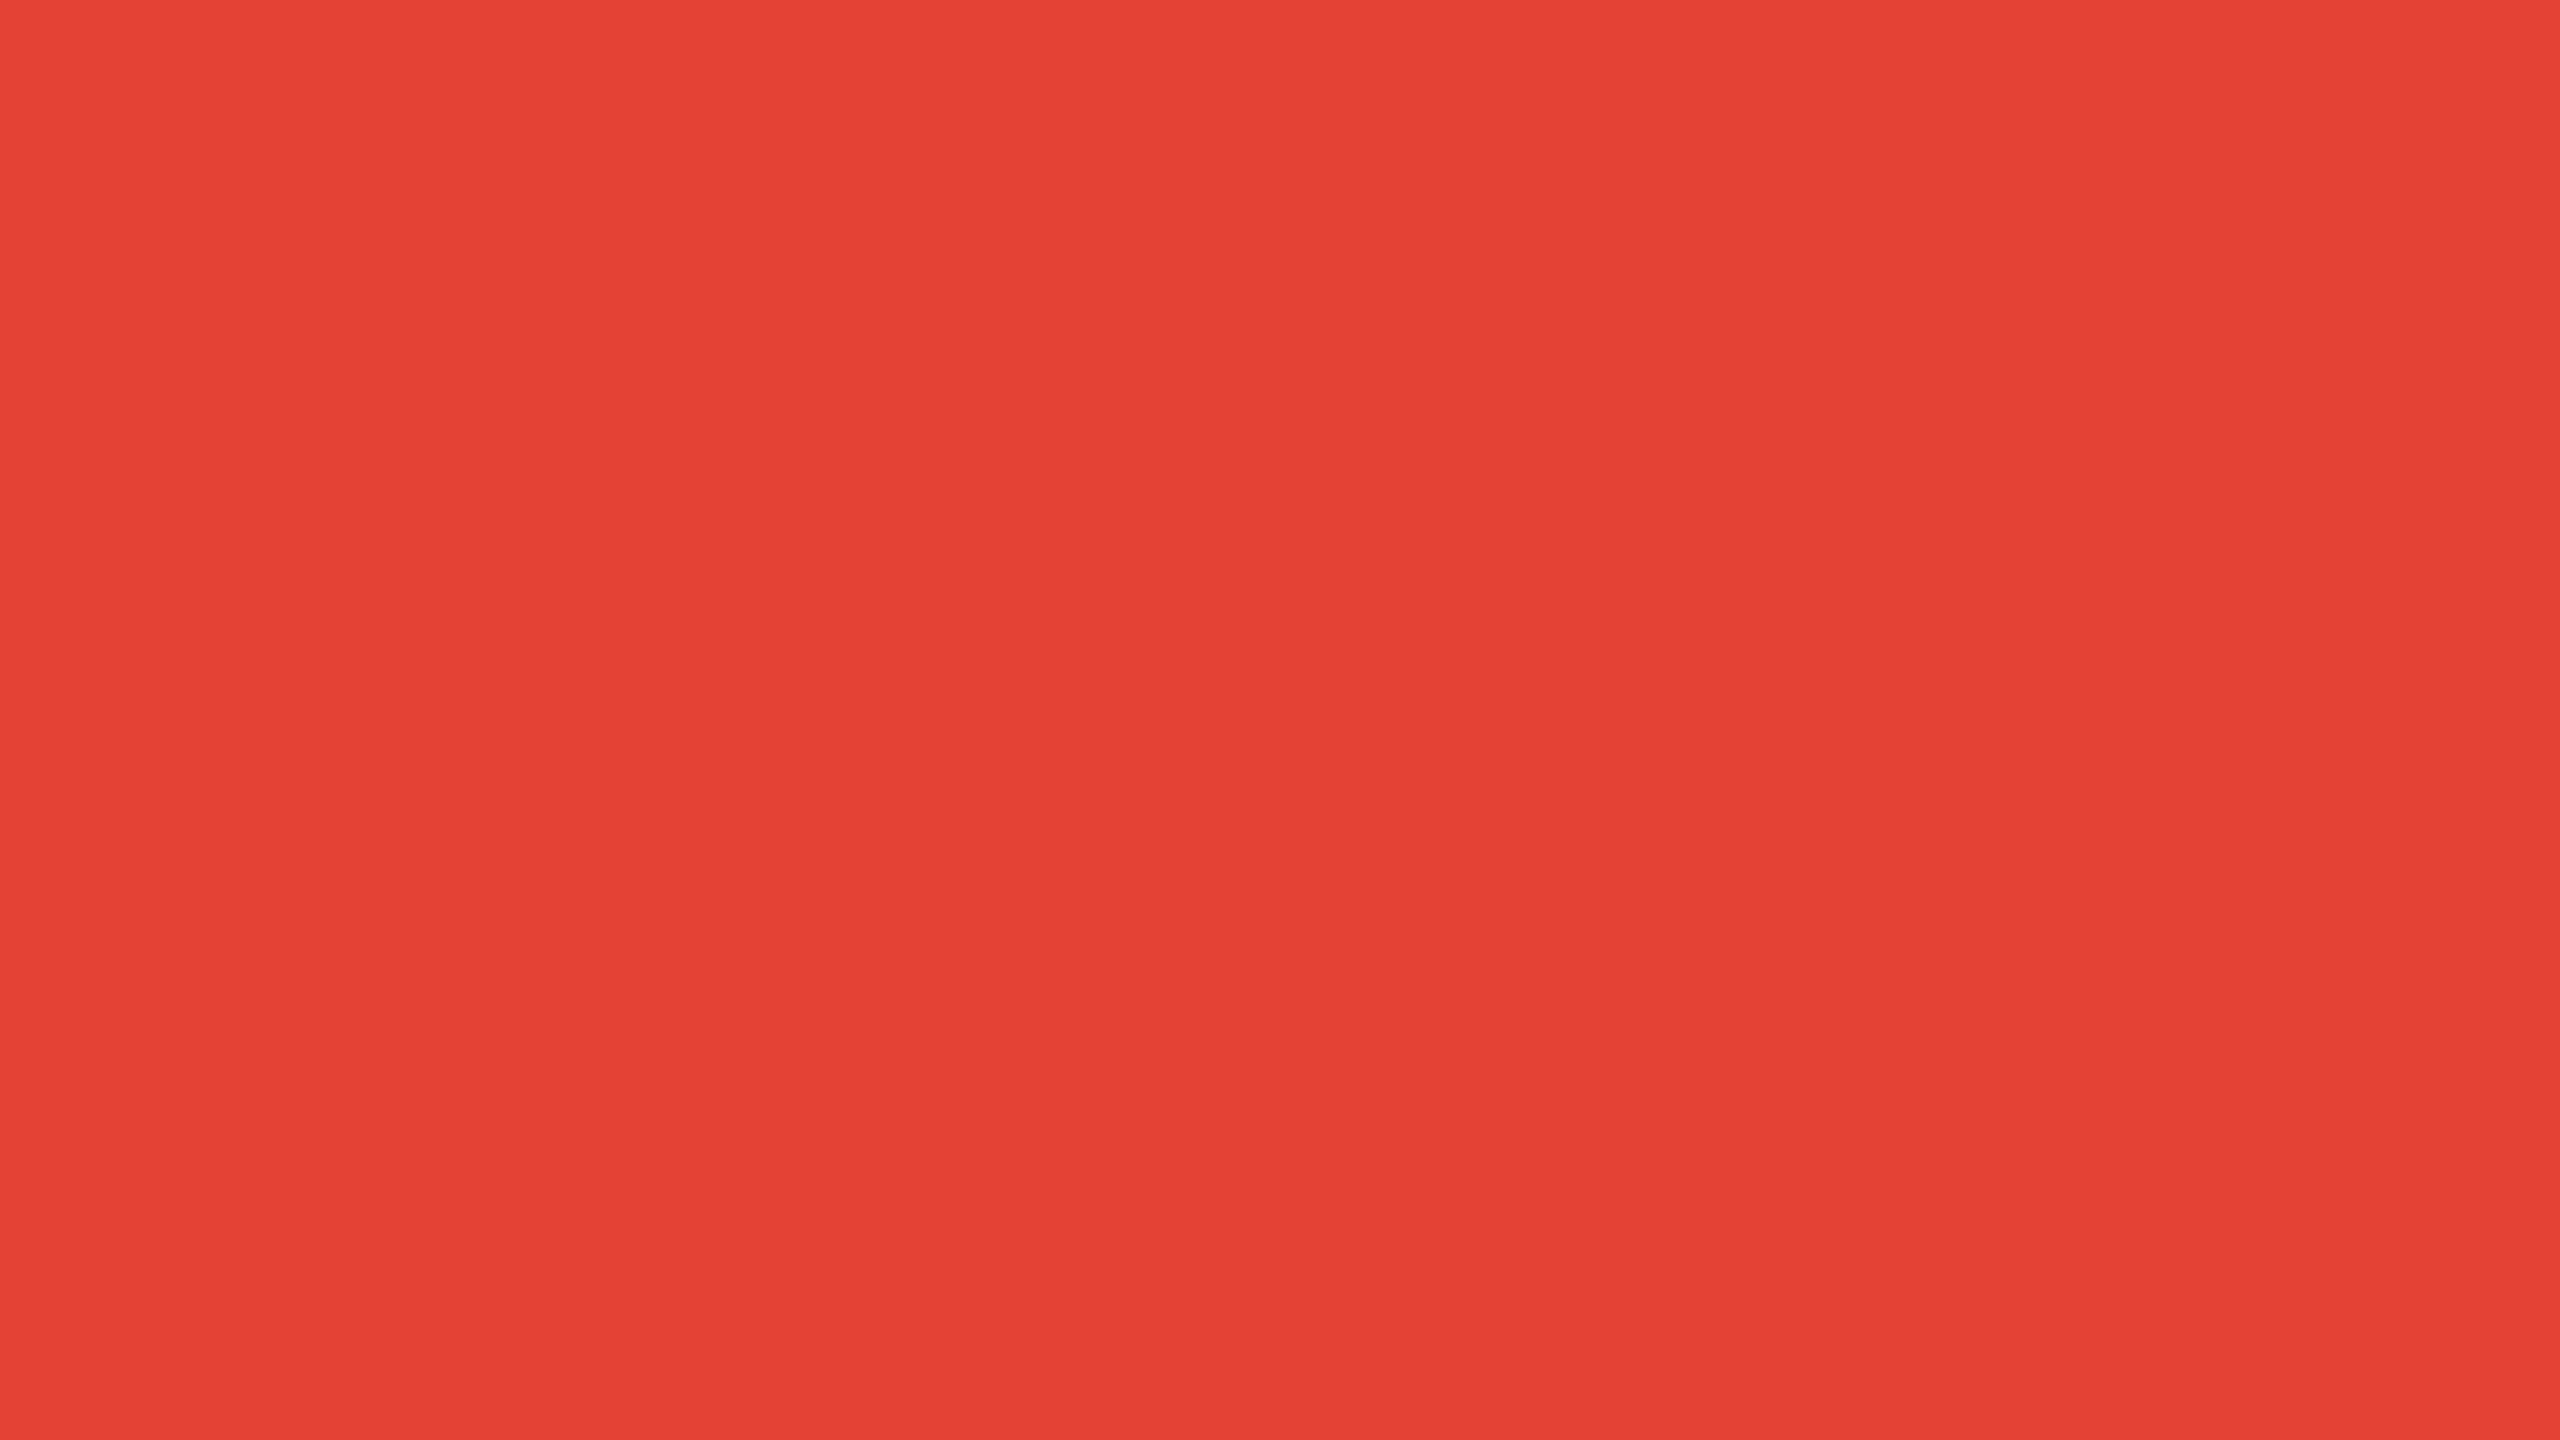 2560x1440 Cinnabar Solid Color Background